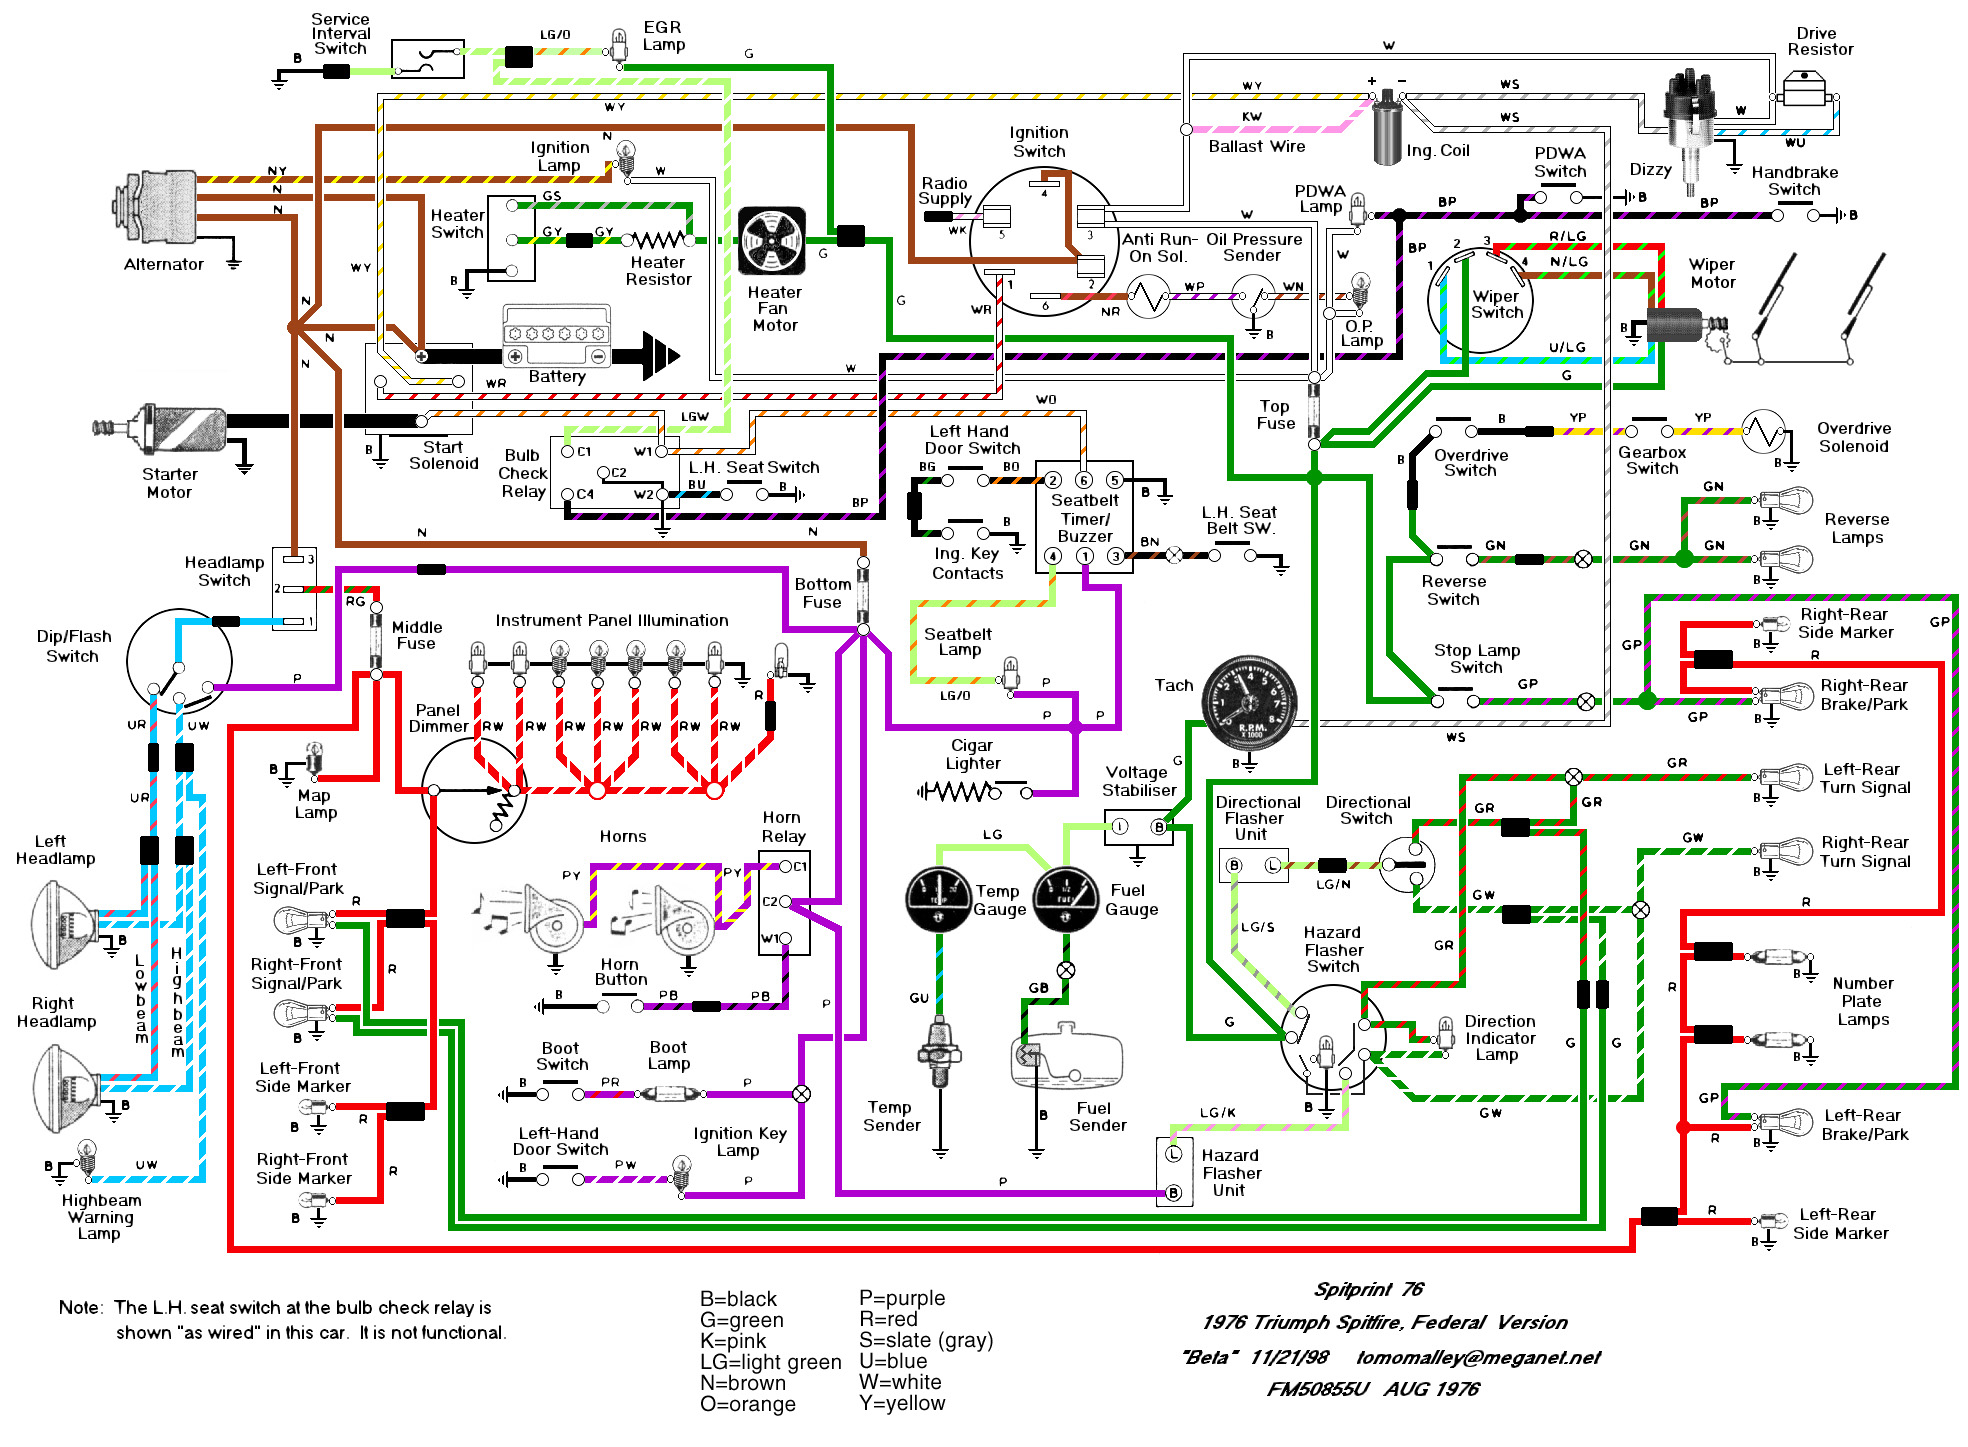 76diagram wiring diagram car car radio wiring diagrams \u2022 free wiring auto wiring diagram at gsmx.co